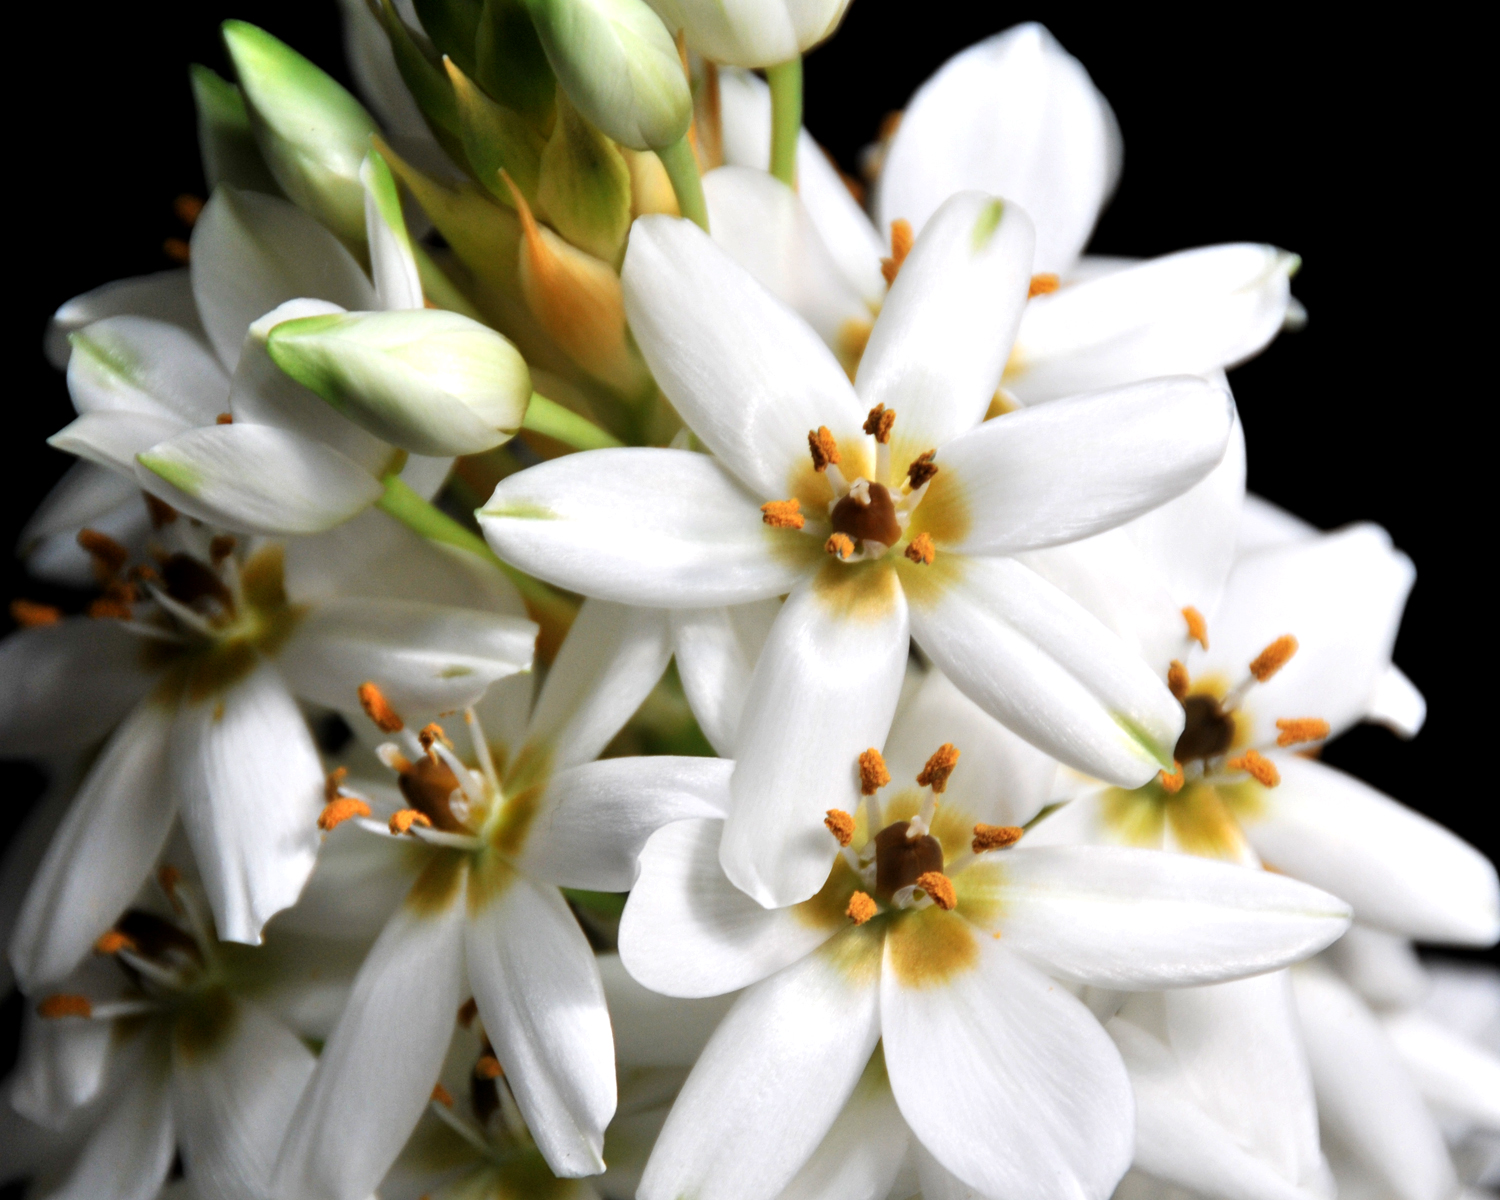 Star of Bethlehem flowers